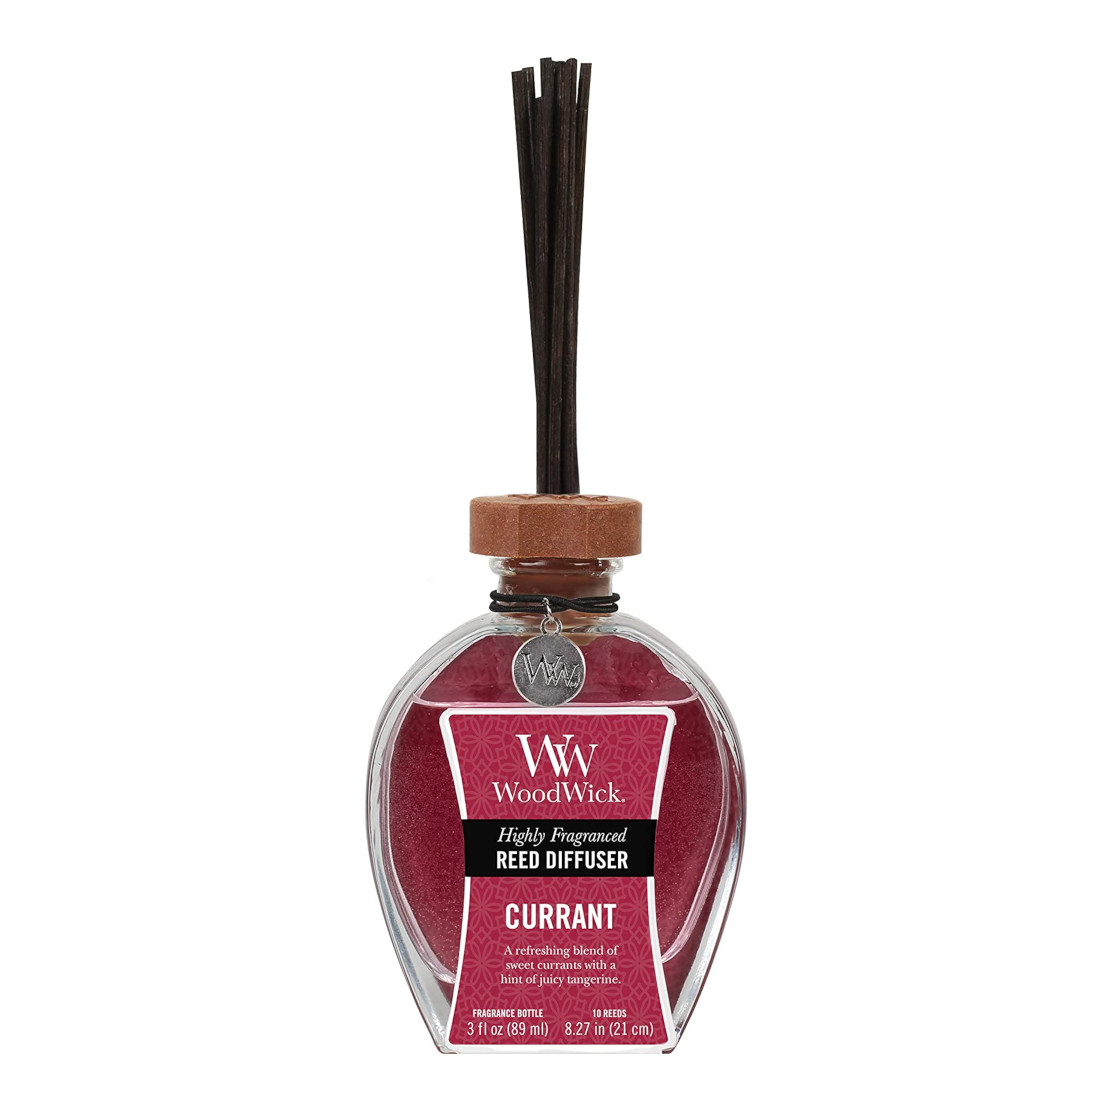 Woodwick Currant Reed Diffuser